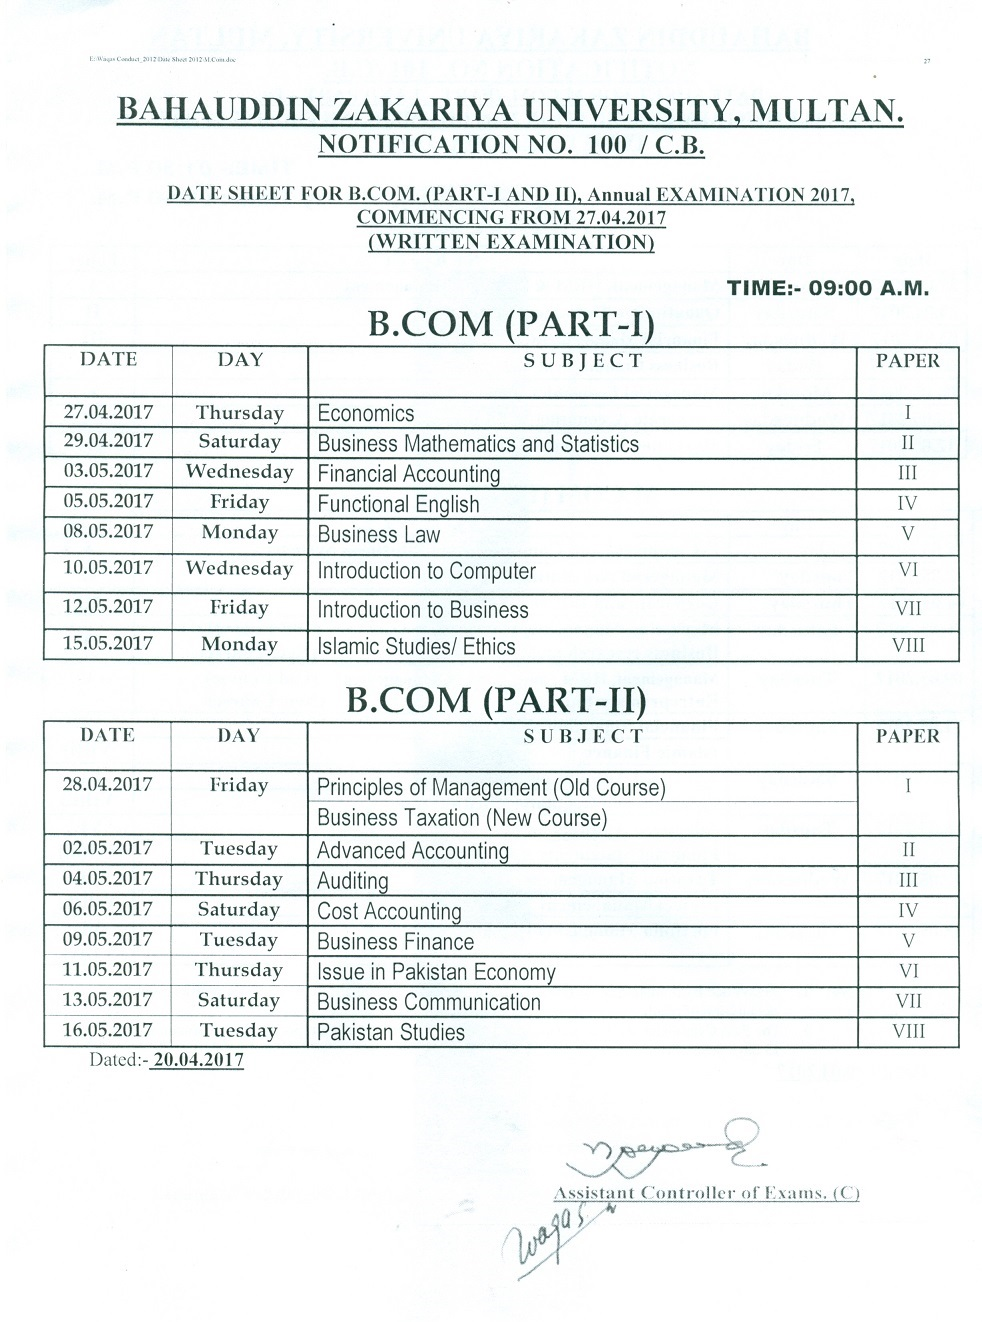 Examination exam schedule in 2017 10